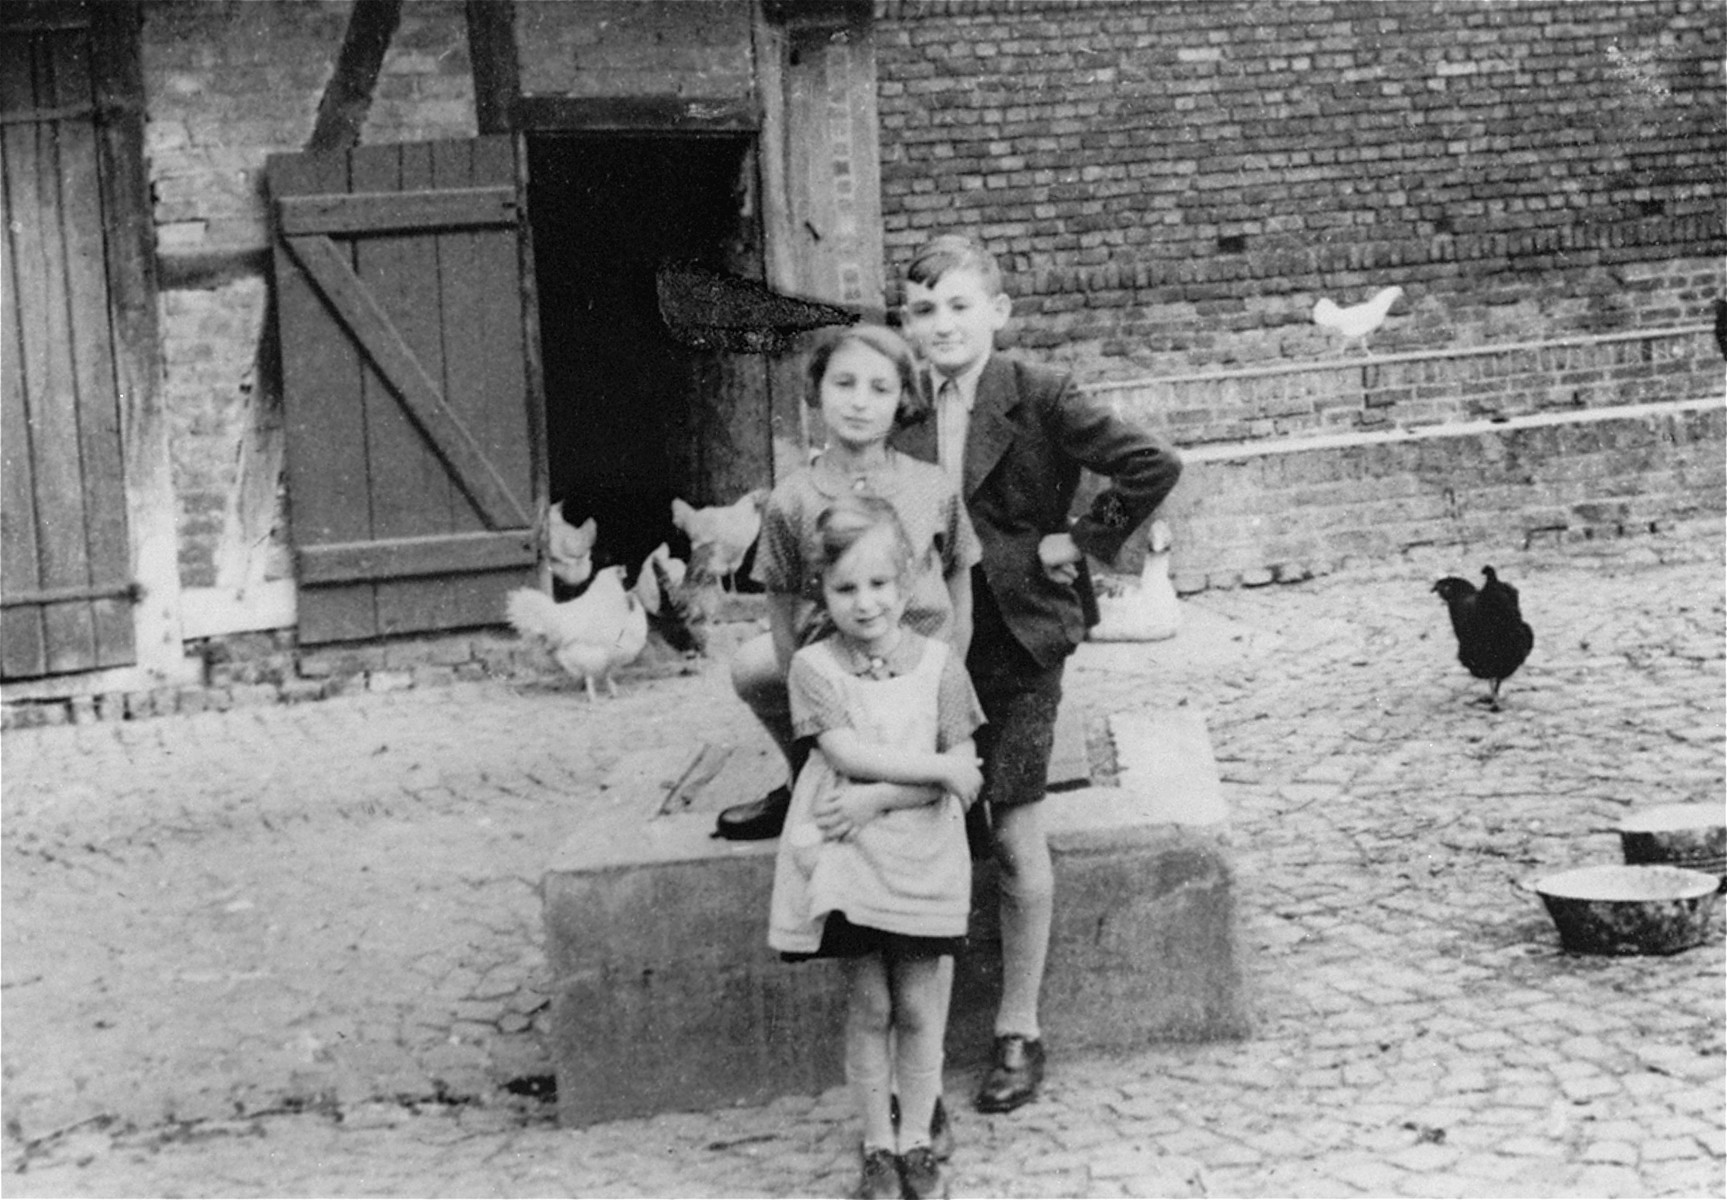 Three Jewish children pose outside on their family farm prior to their emigration from Germany.  Pictured are Gisela Berg, her sister Inge, and their cousin Harvey Meyer. The Meyer family left for the U.S. on the day this photograph was taken.